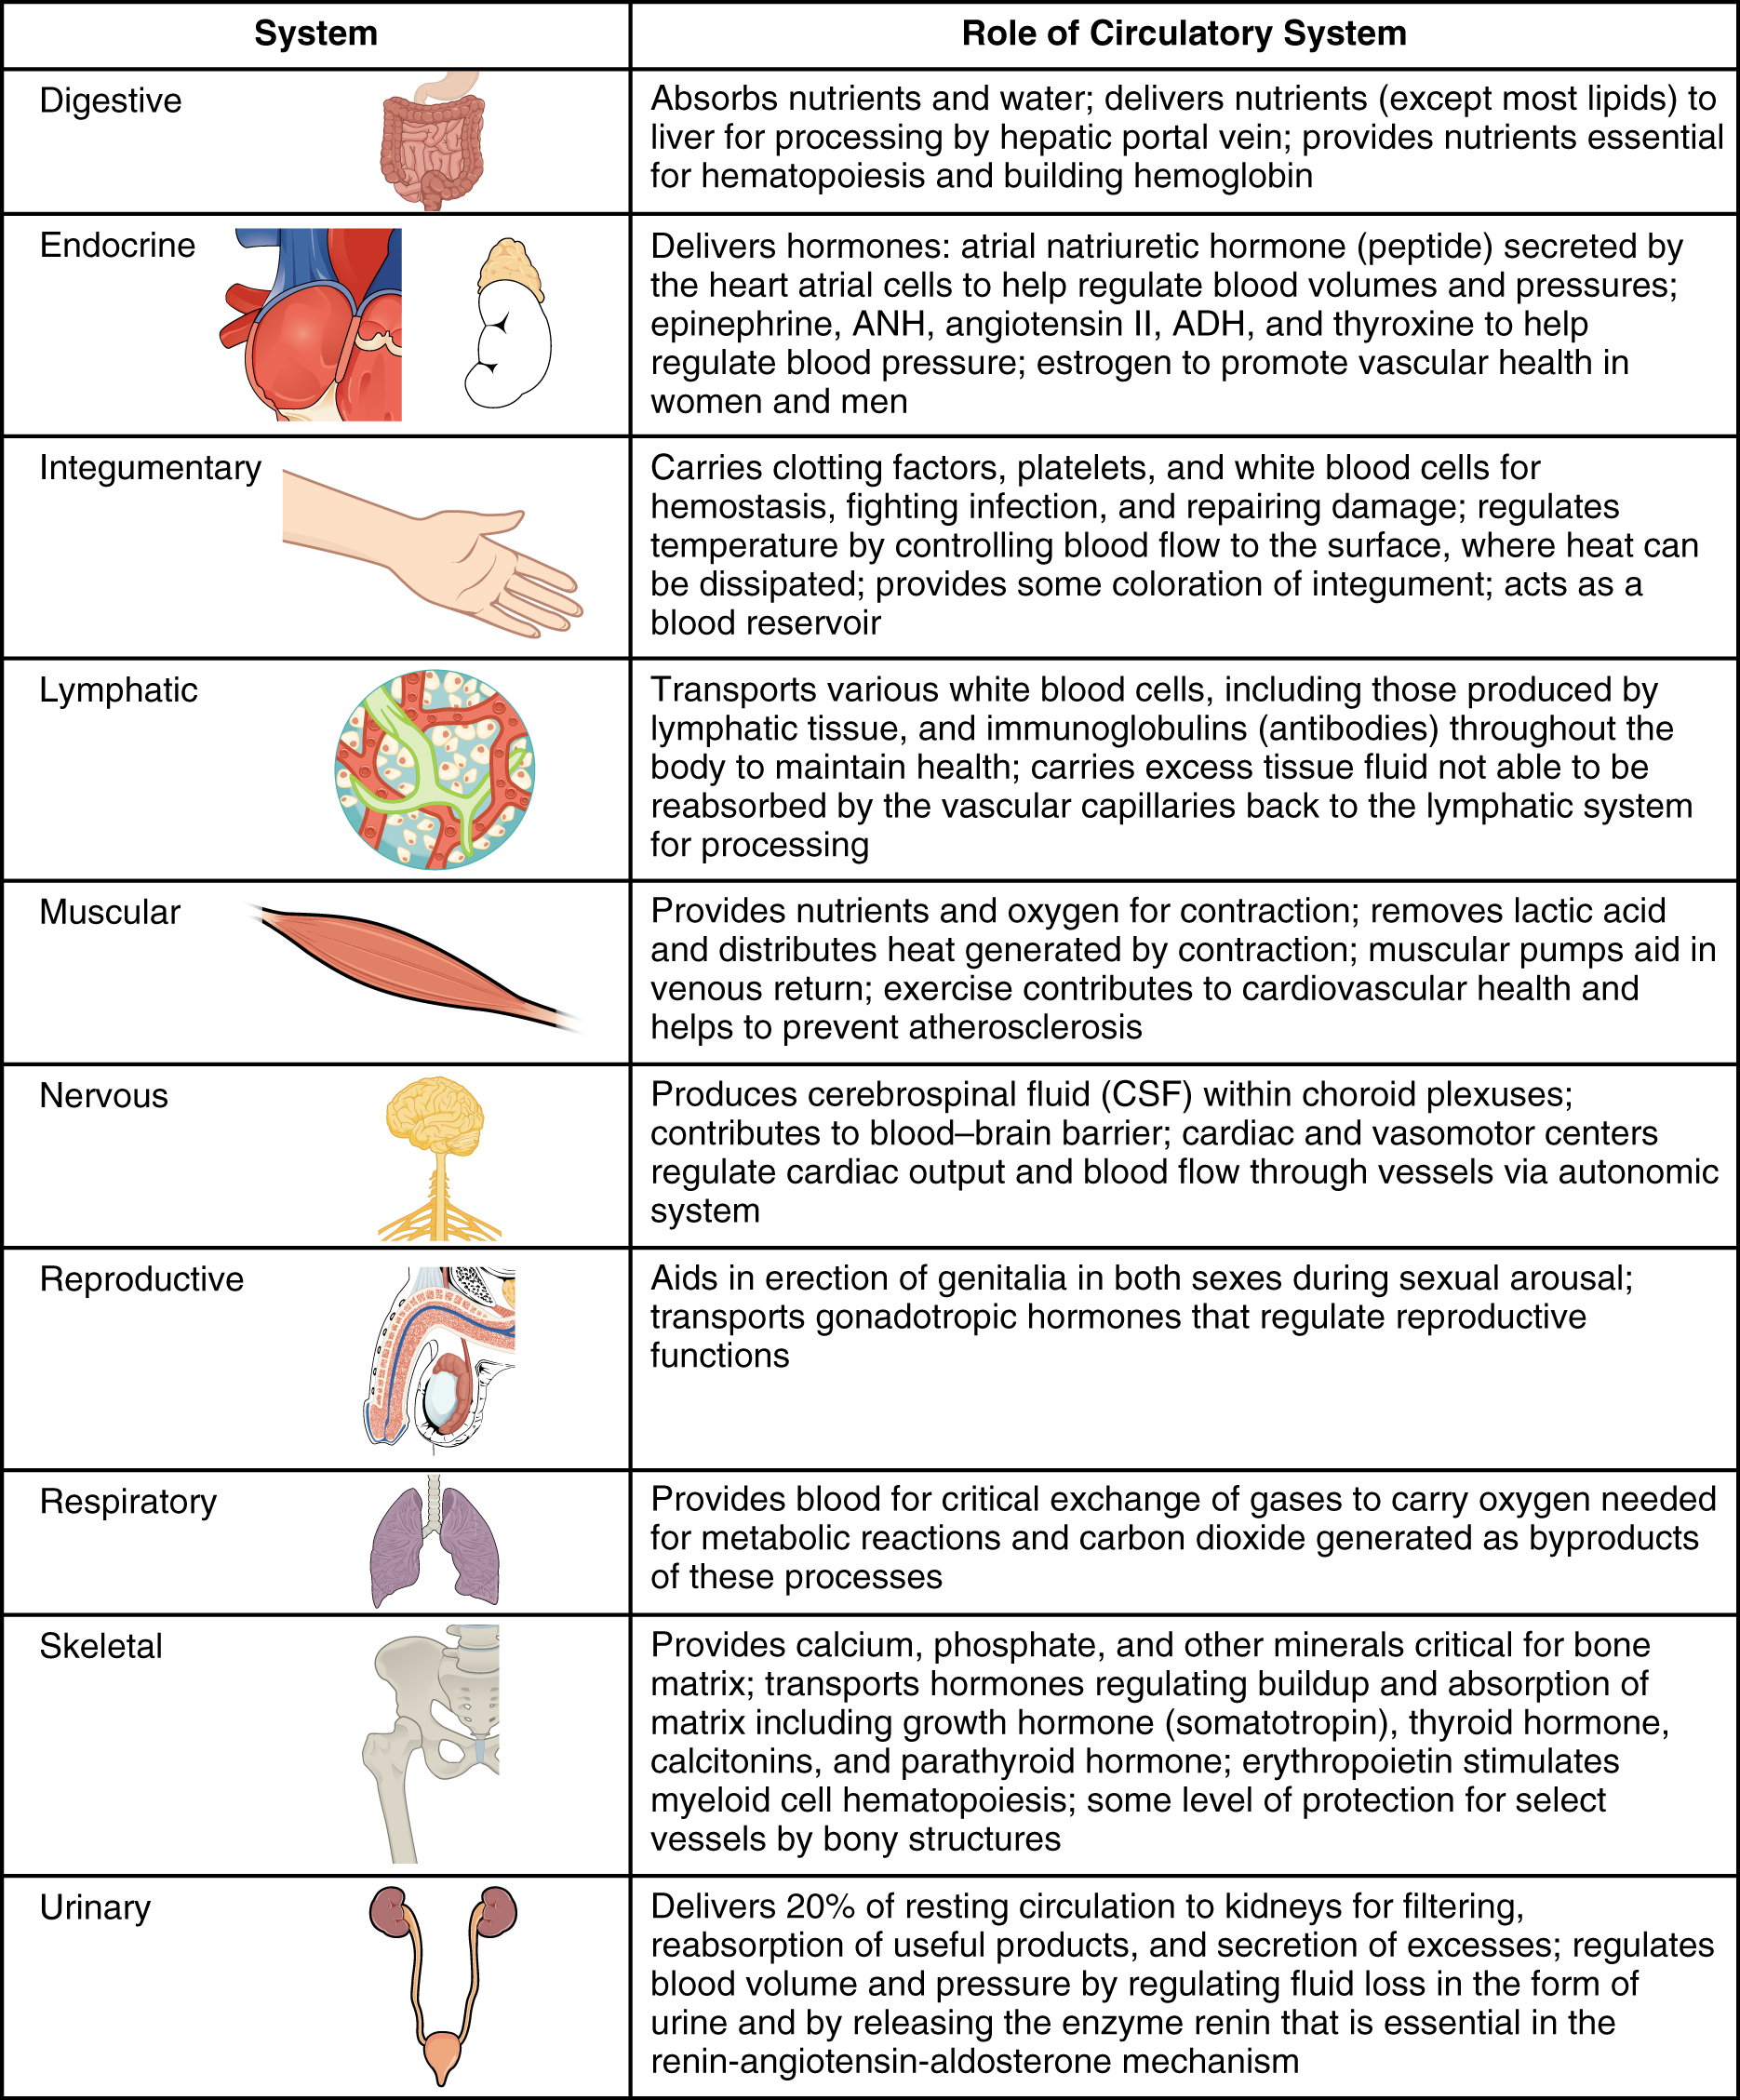 Body Systems Chart Seroton Ponderresearch Co